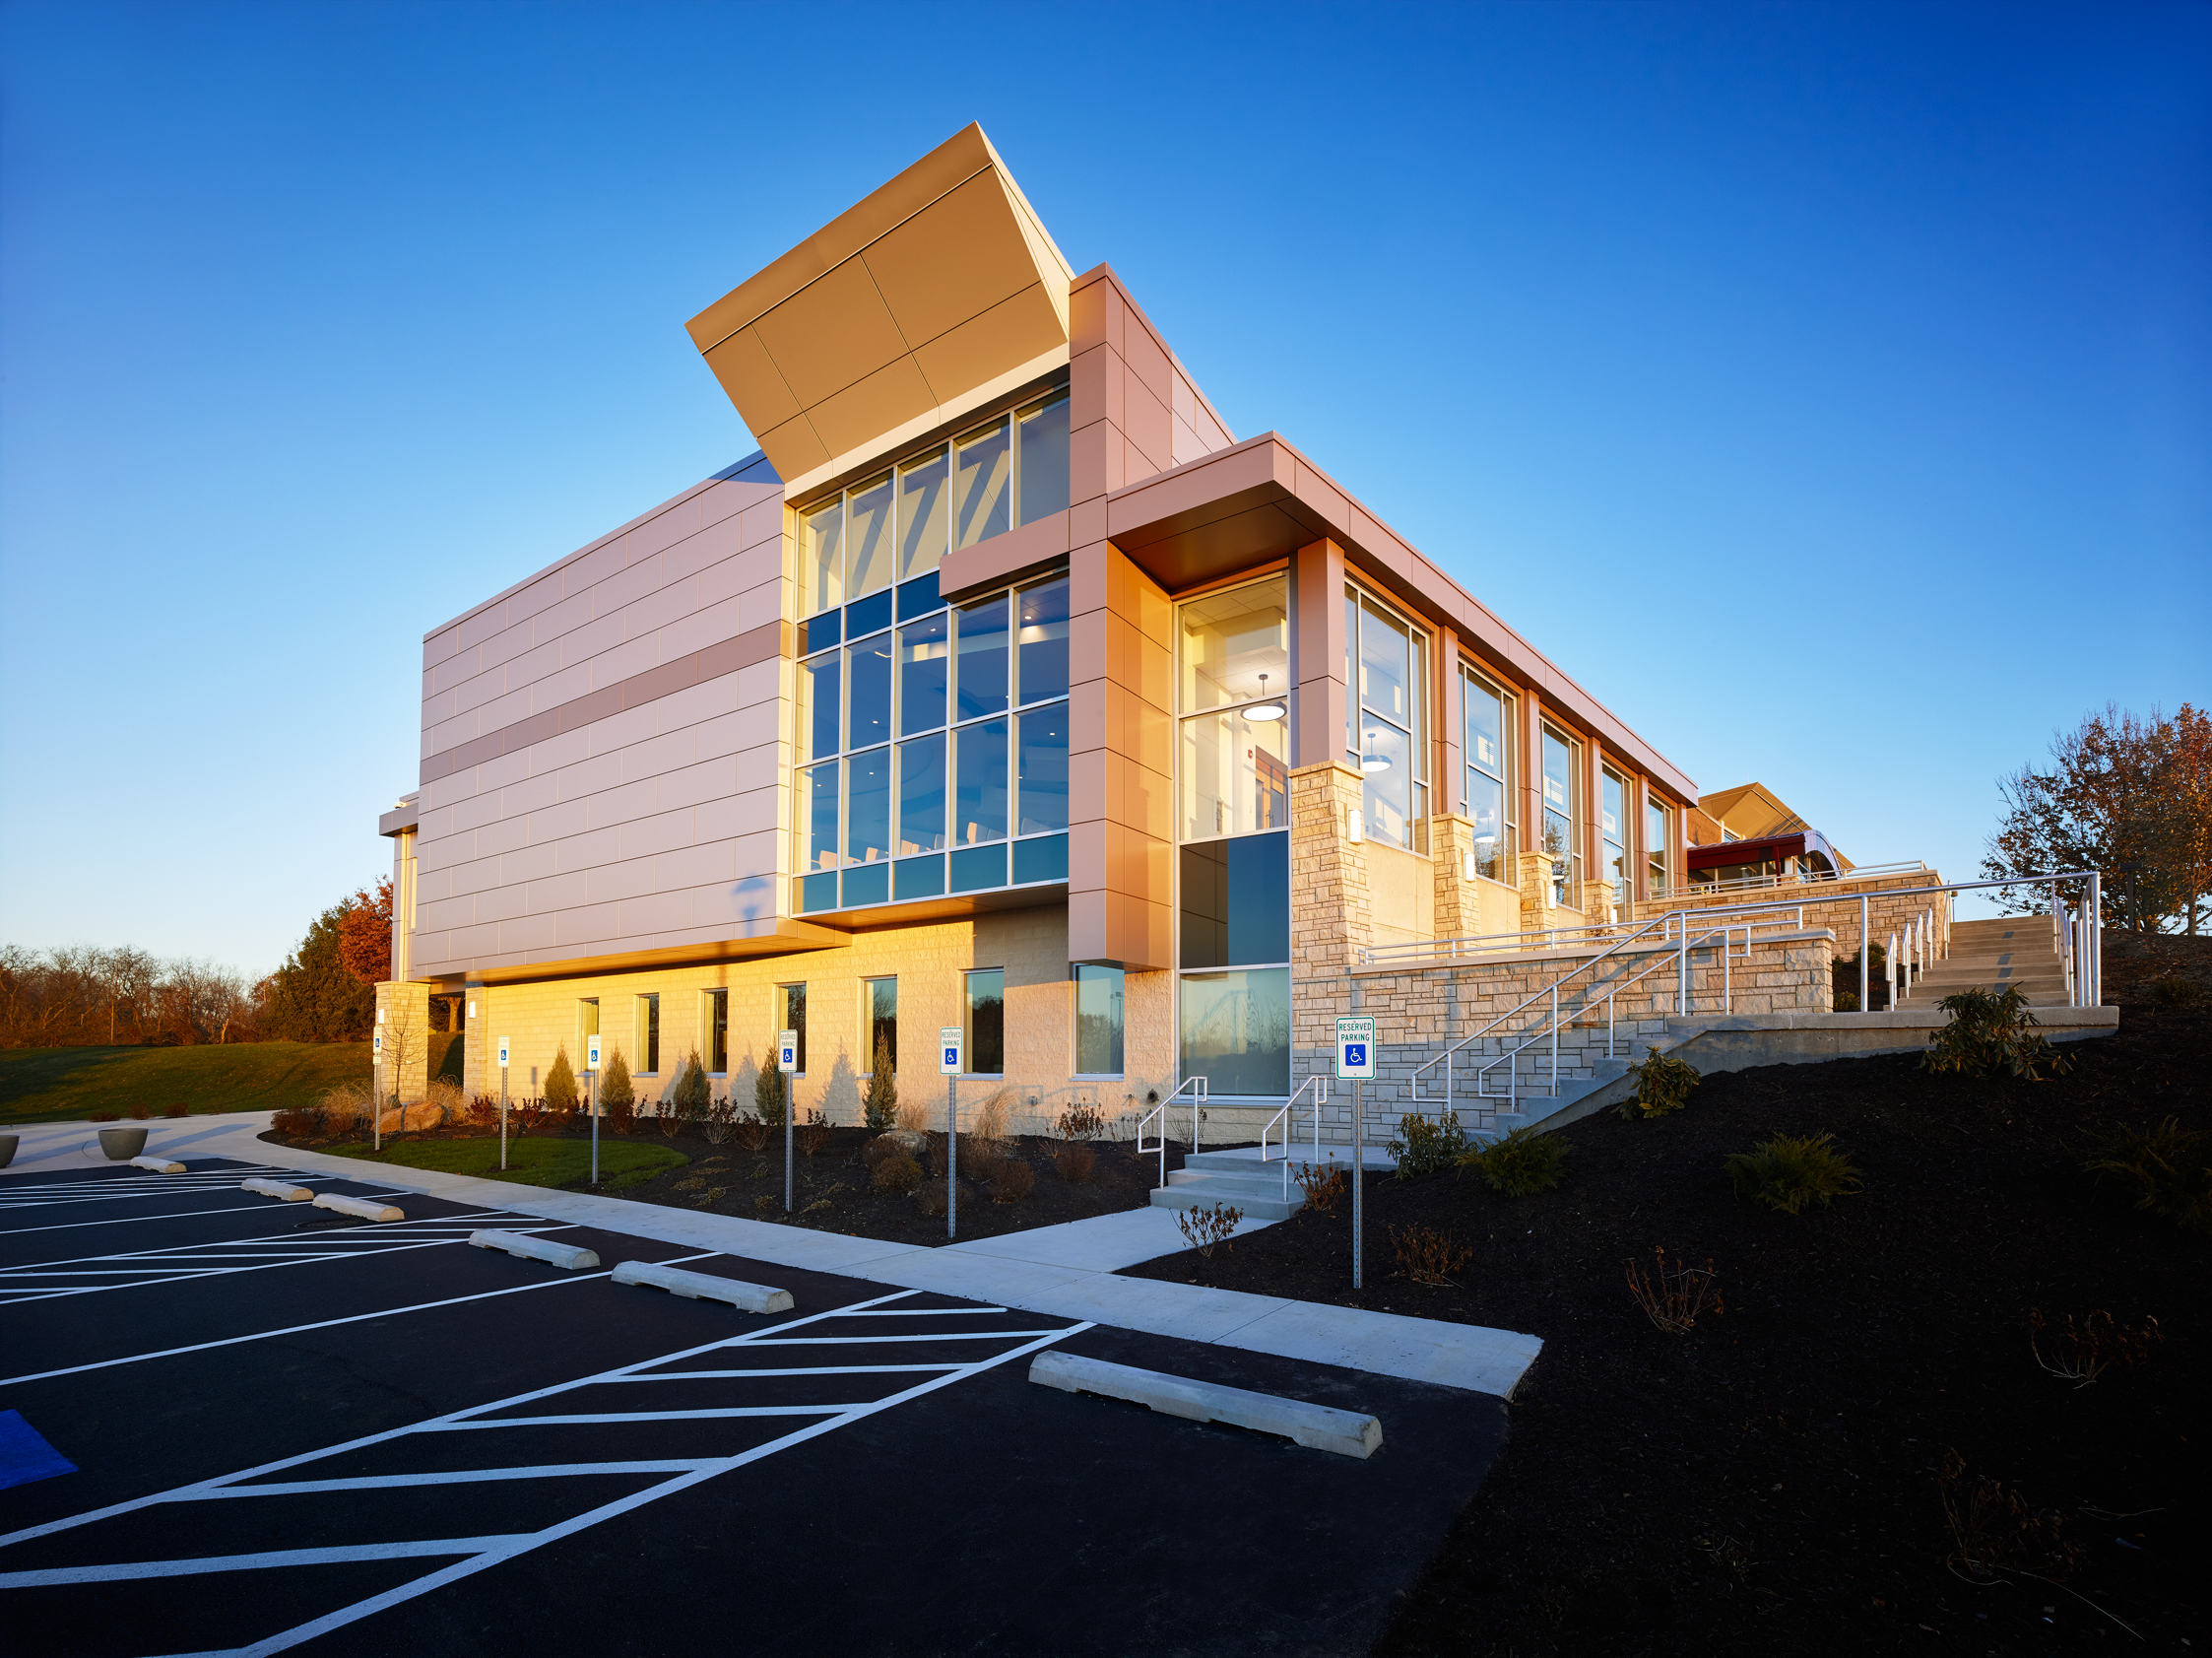 ORCHARD HILL CHURCH CHAPEL ADDITION